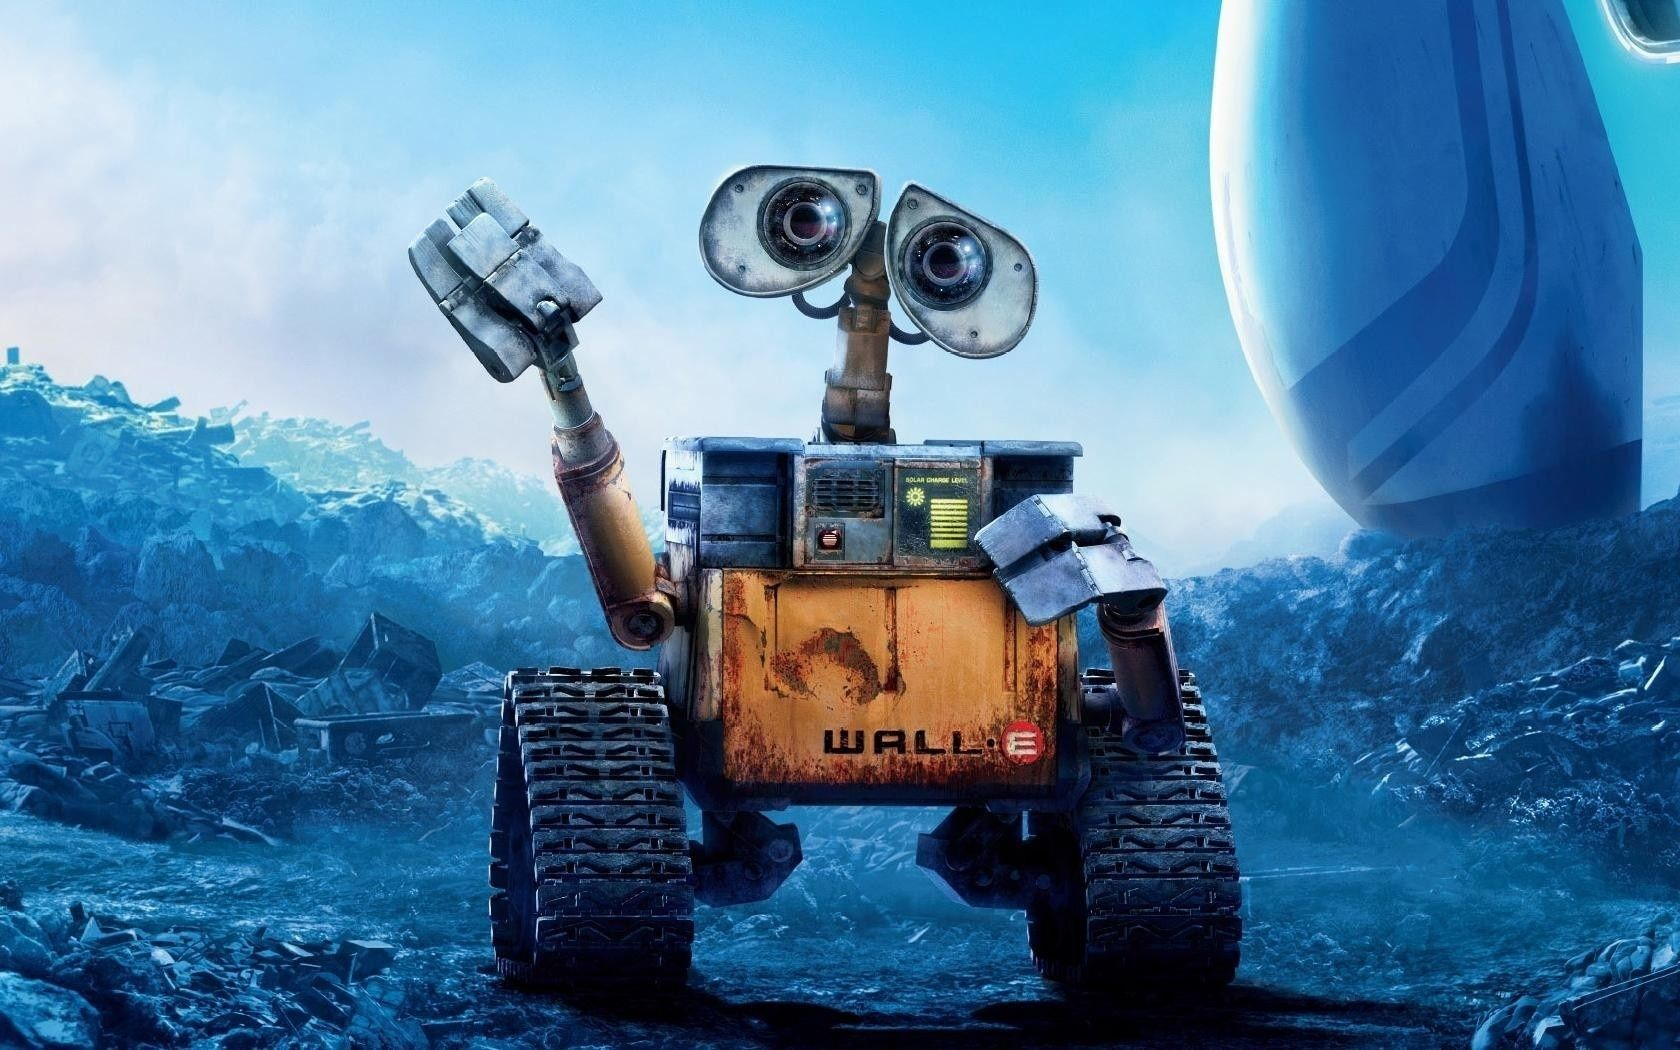 wall e irrational love defeats life s programming For one specific corporationpixar's new film, wall-e of his binoculars as the premise that irrational love defeats life's programming.